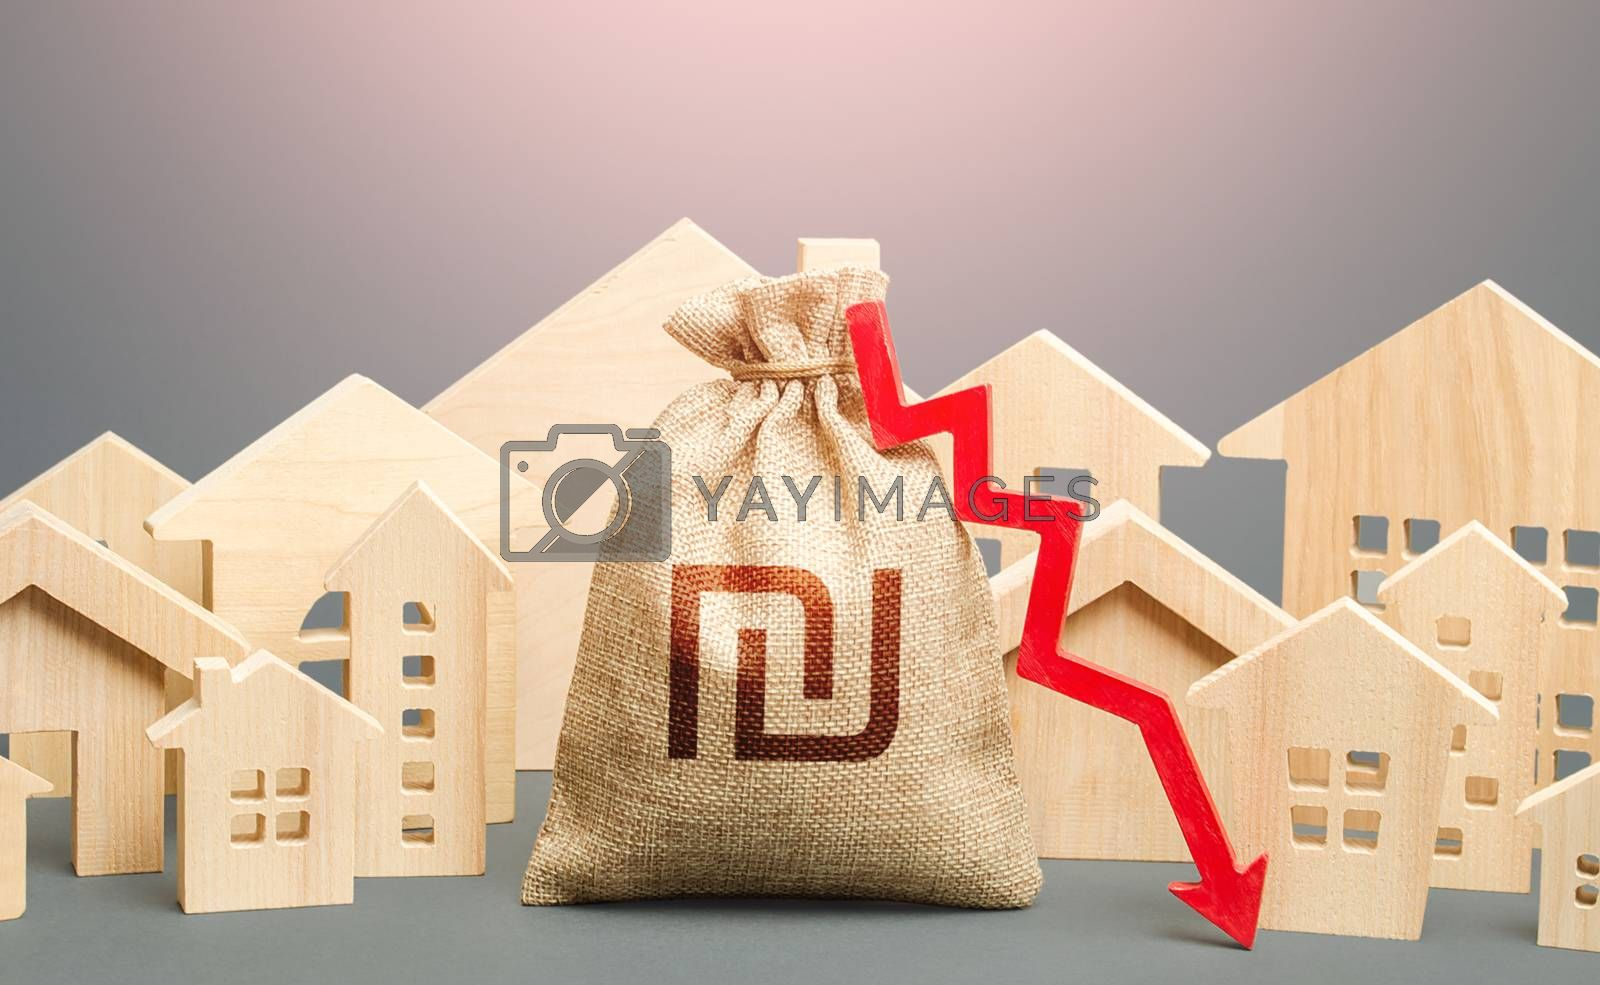 City residential buildings and israeli shekel money bag with a red down arrow. Lower mortgage interest rates. Low demand for home buying. Low cost real estate. Falling prices for rental apartments.